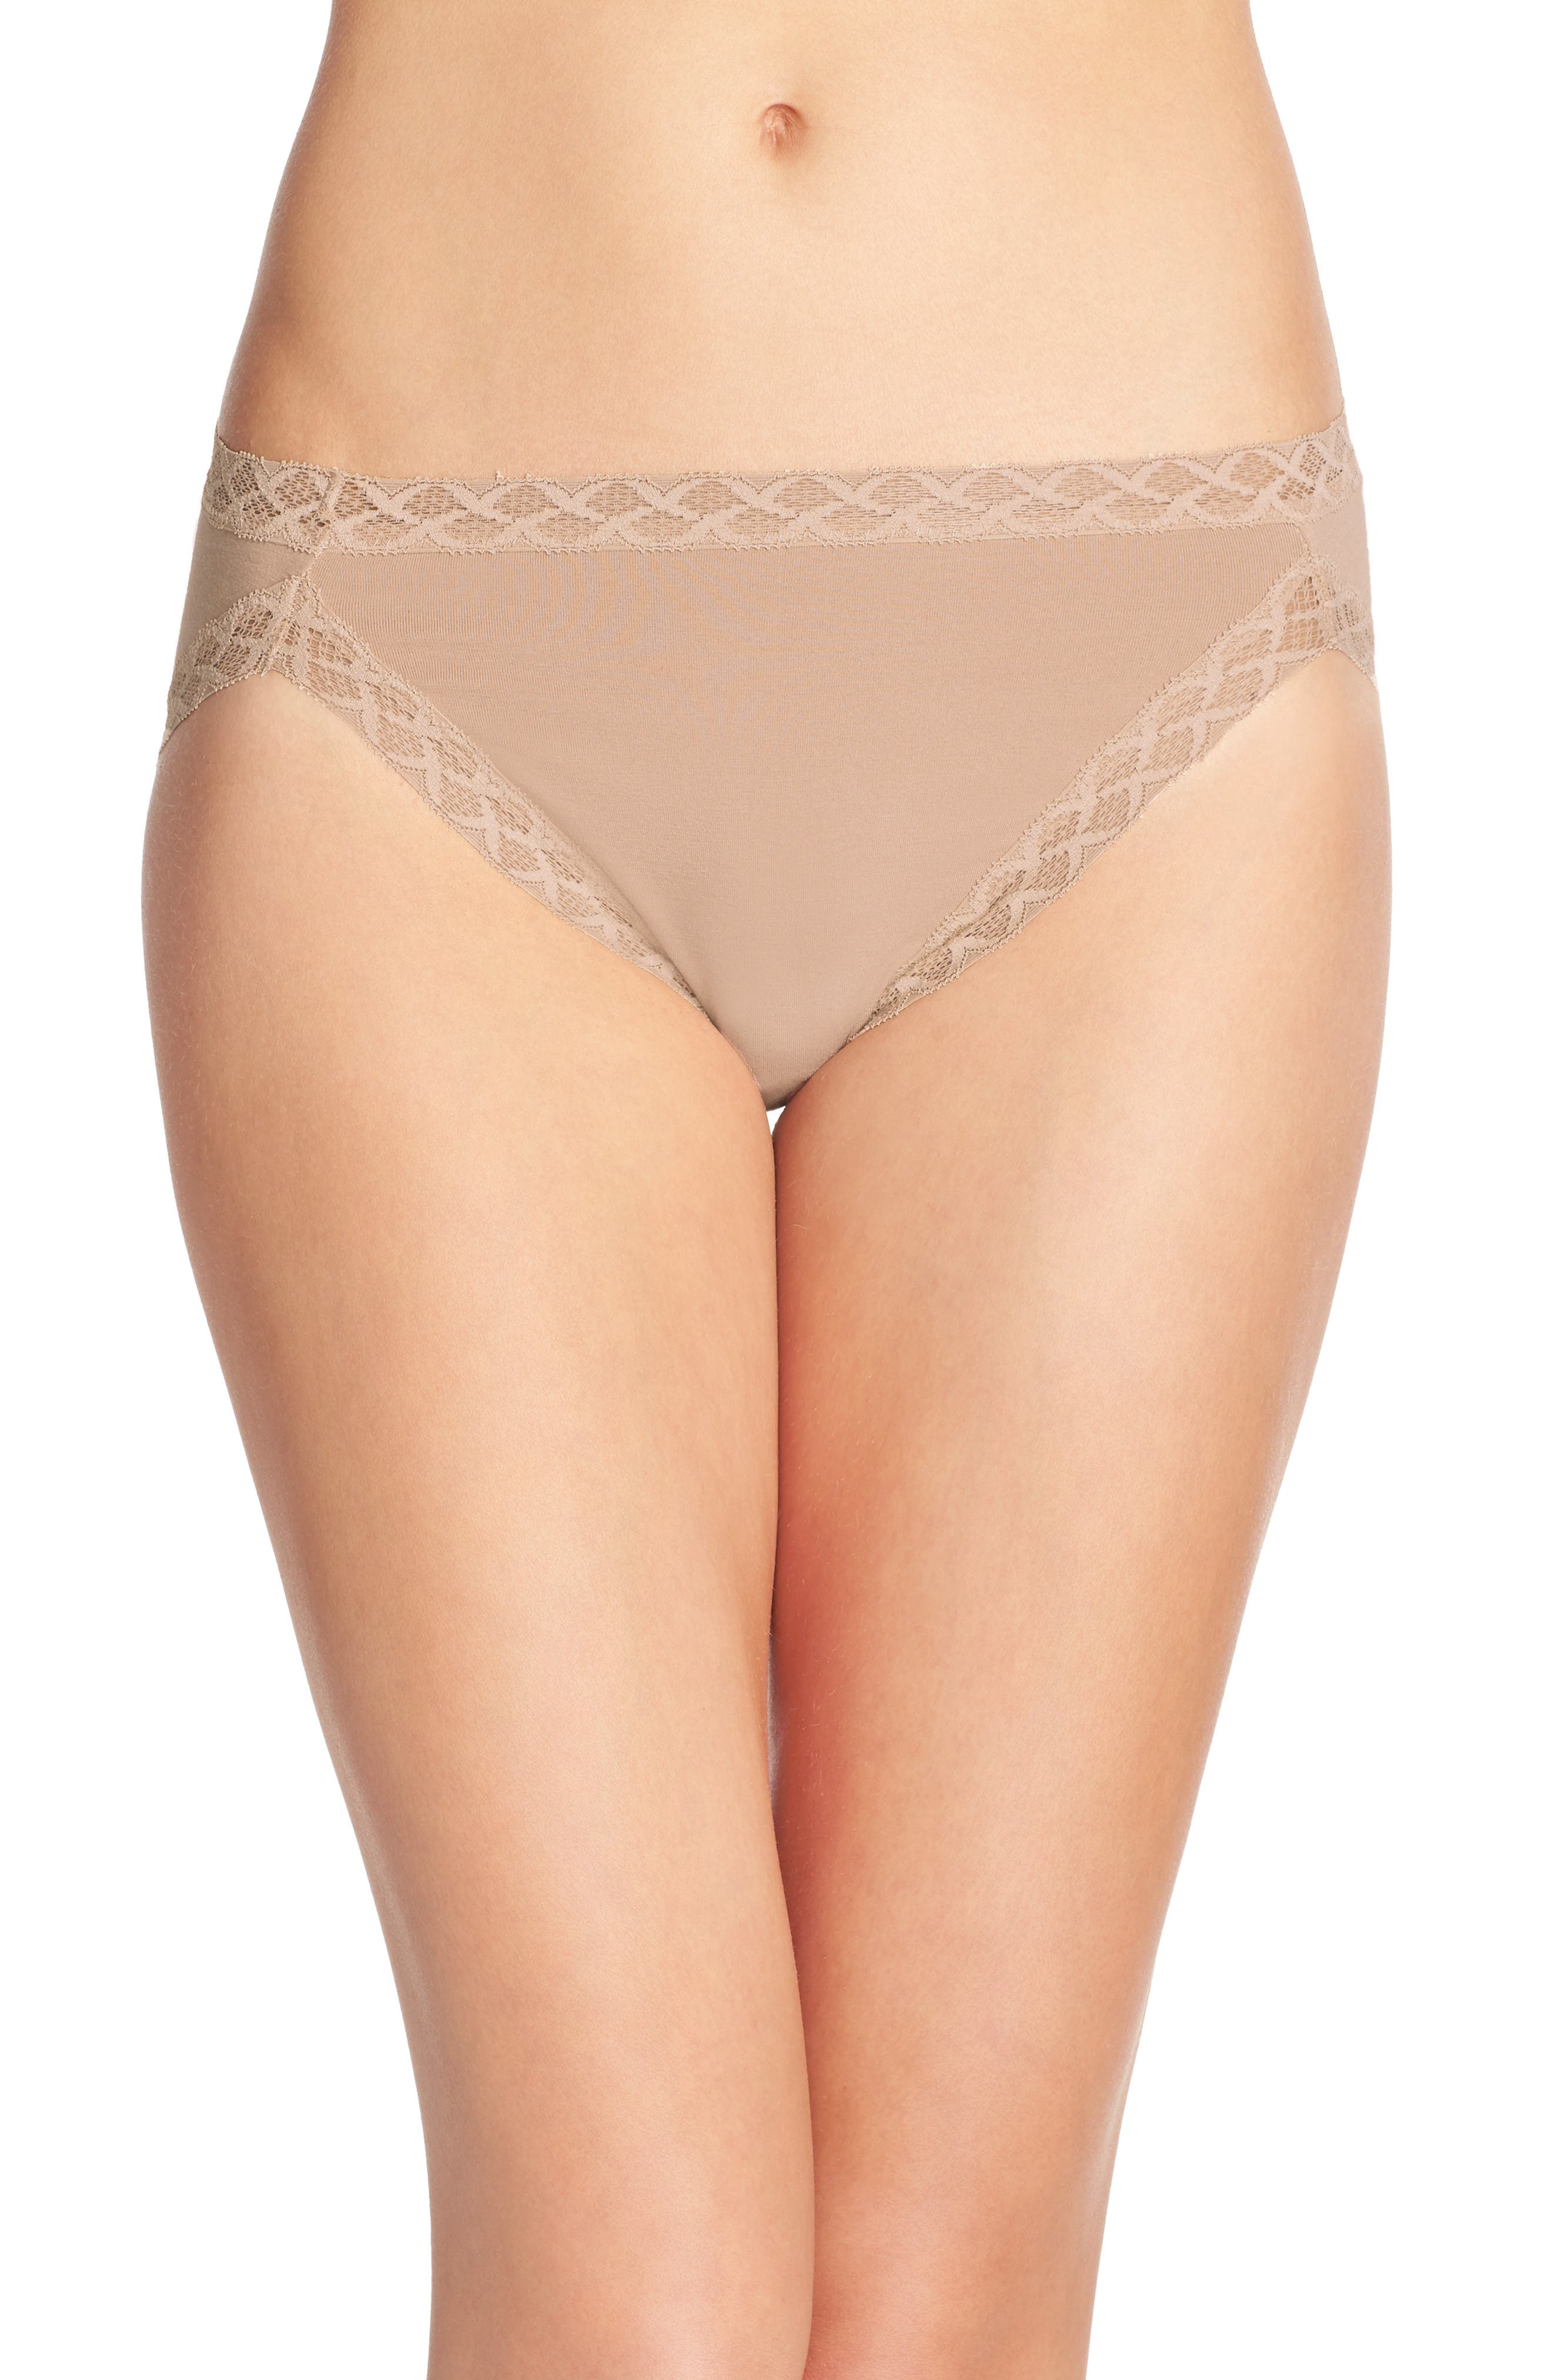 Bliss French Cut Briefs,                             Main thumbnail 1, color,                             Cafe